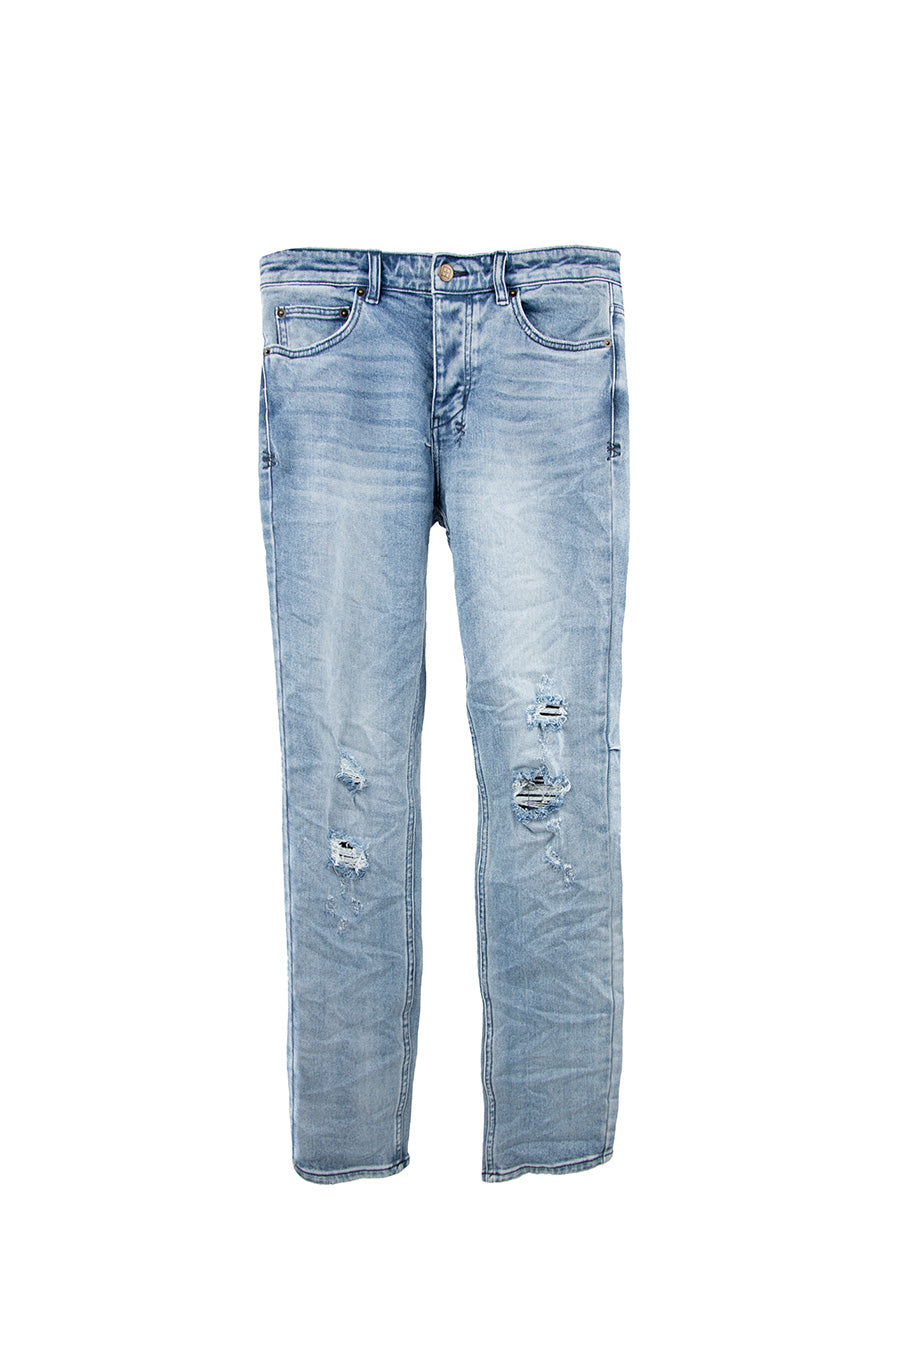 Ksubi - Blue Philly Chitch Jeans | 1032 SPACE